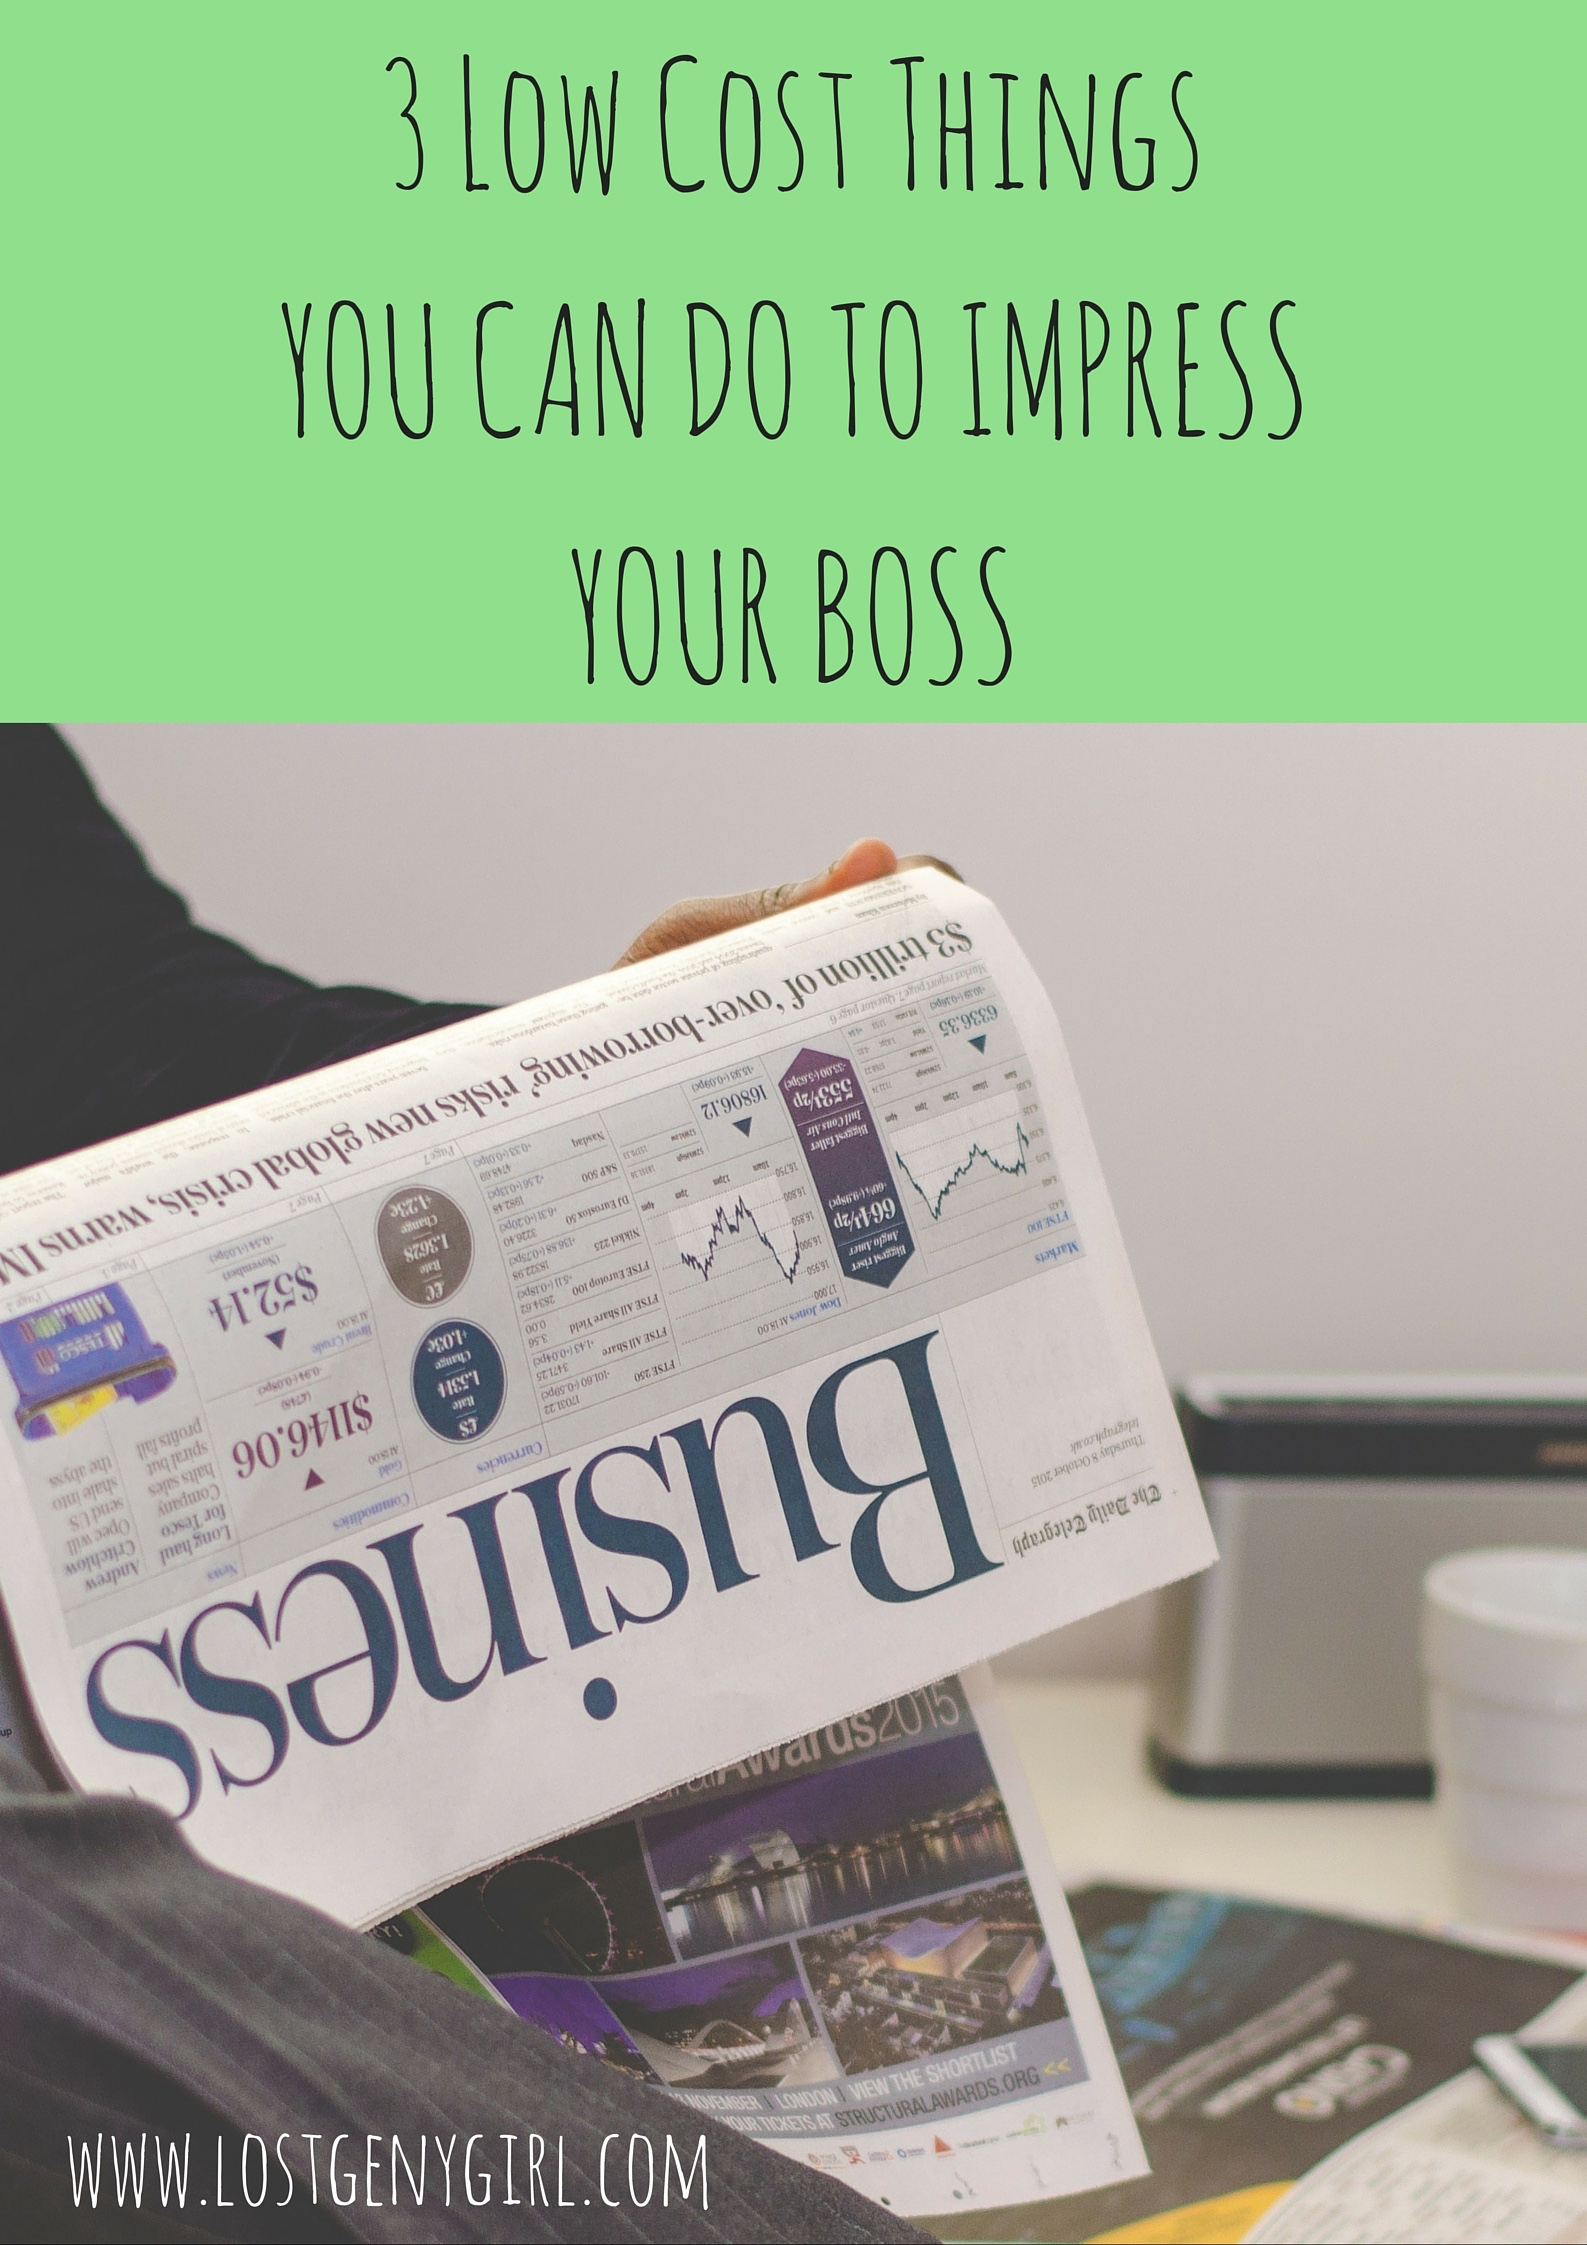 Things You Can Do To Impress Your Boss